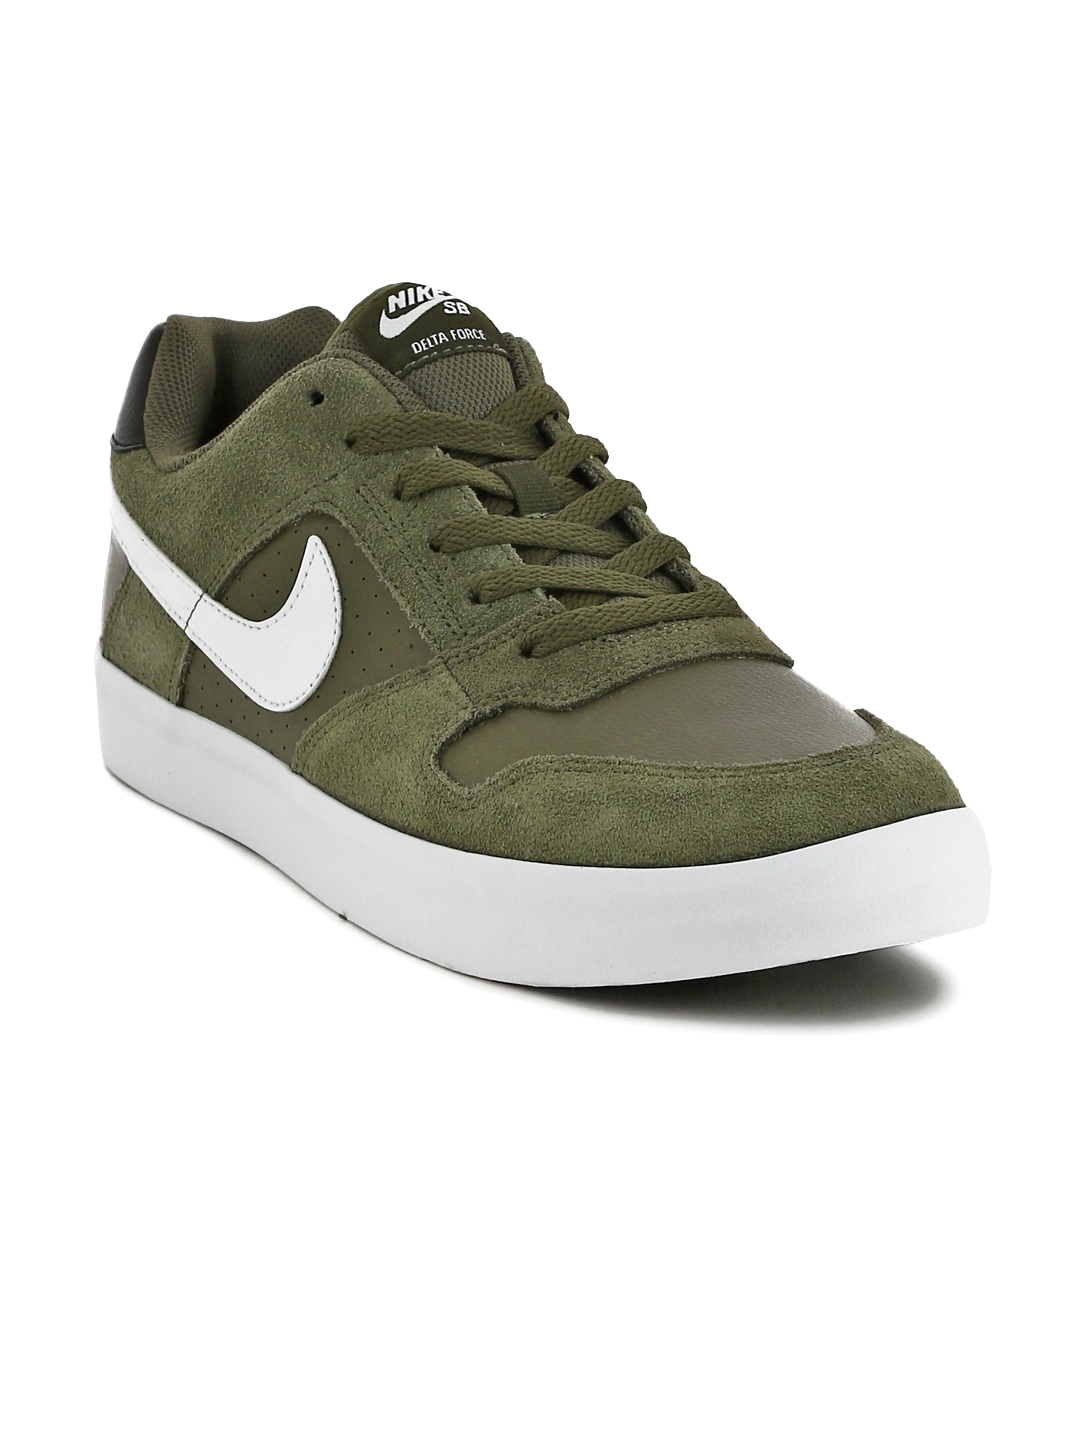 d7c4c62bc896d2 Buy Nike Men Green SB Delta Force Skate Shoes - Casual Shoes for Men ...